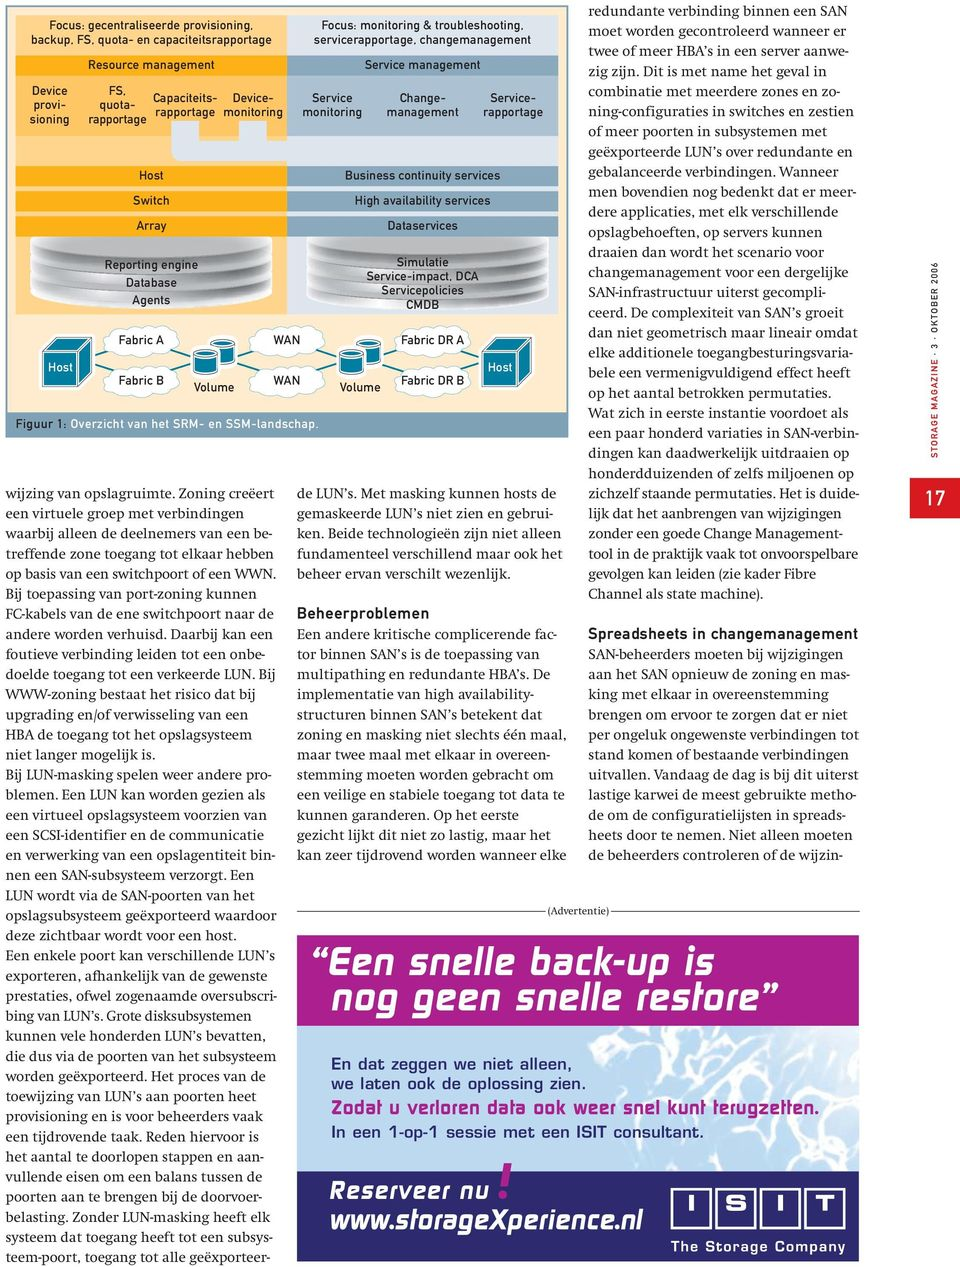 Focus: monitoring & troubleshooting, servicerapportage, changemanagement Service monitoring Service management Business continuity services High availability services Dataservices Simulatie